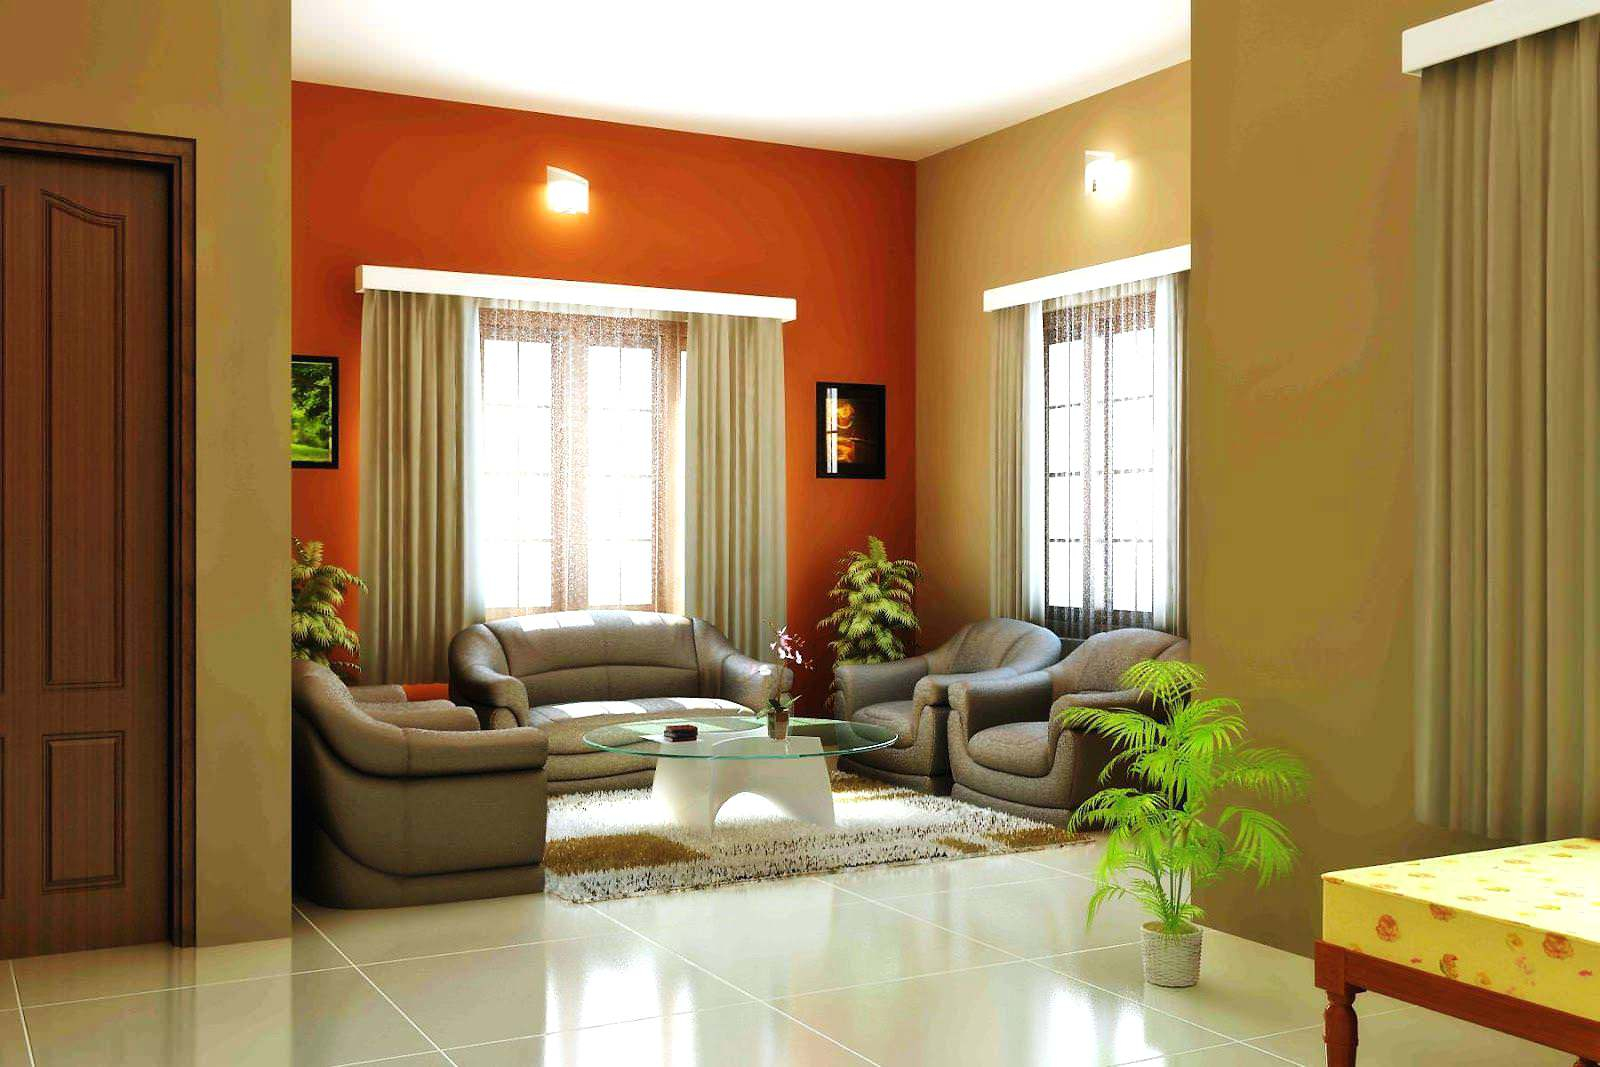 Modern Painting My House Interior Interior House Painting Tips Beginners within Interior House Painting Tips